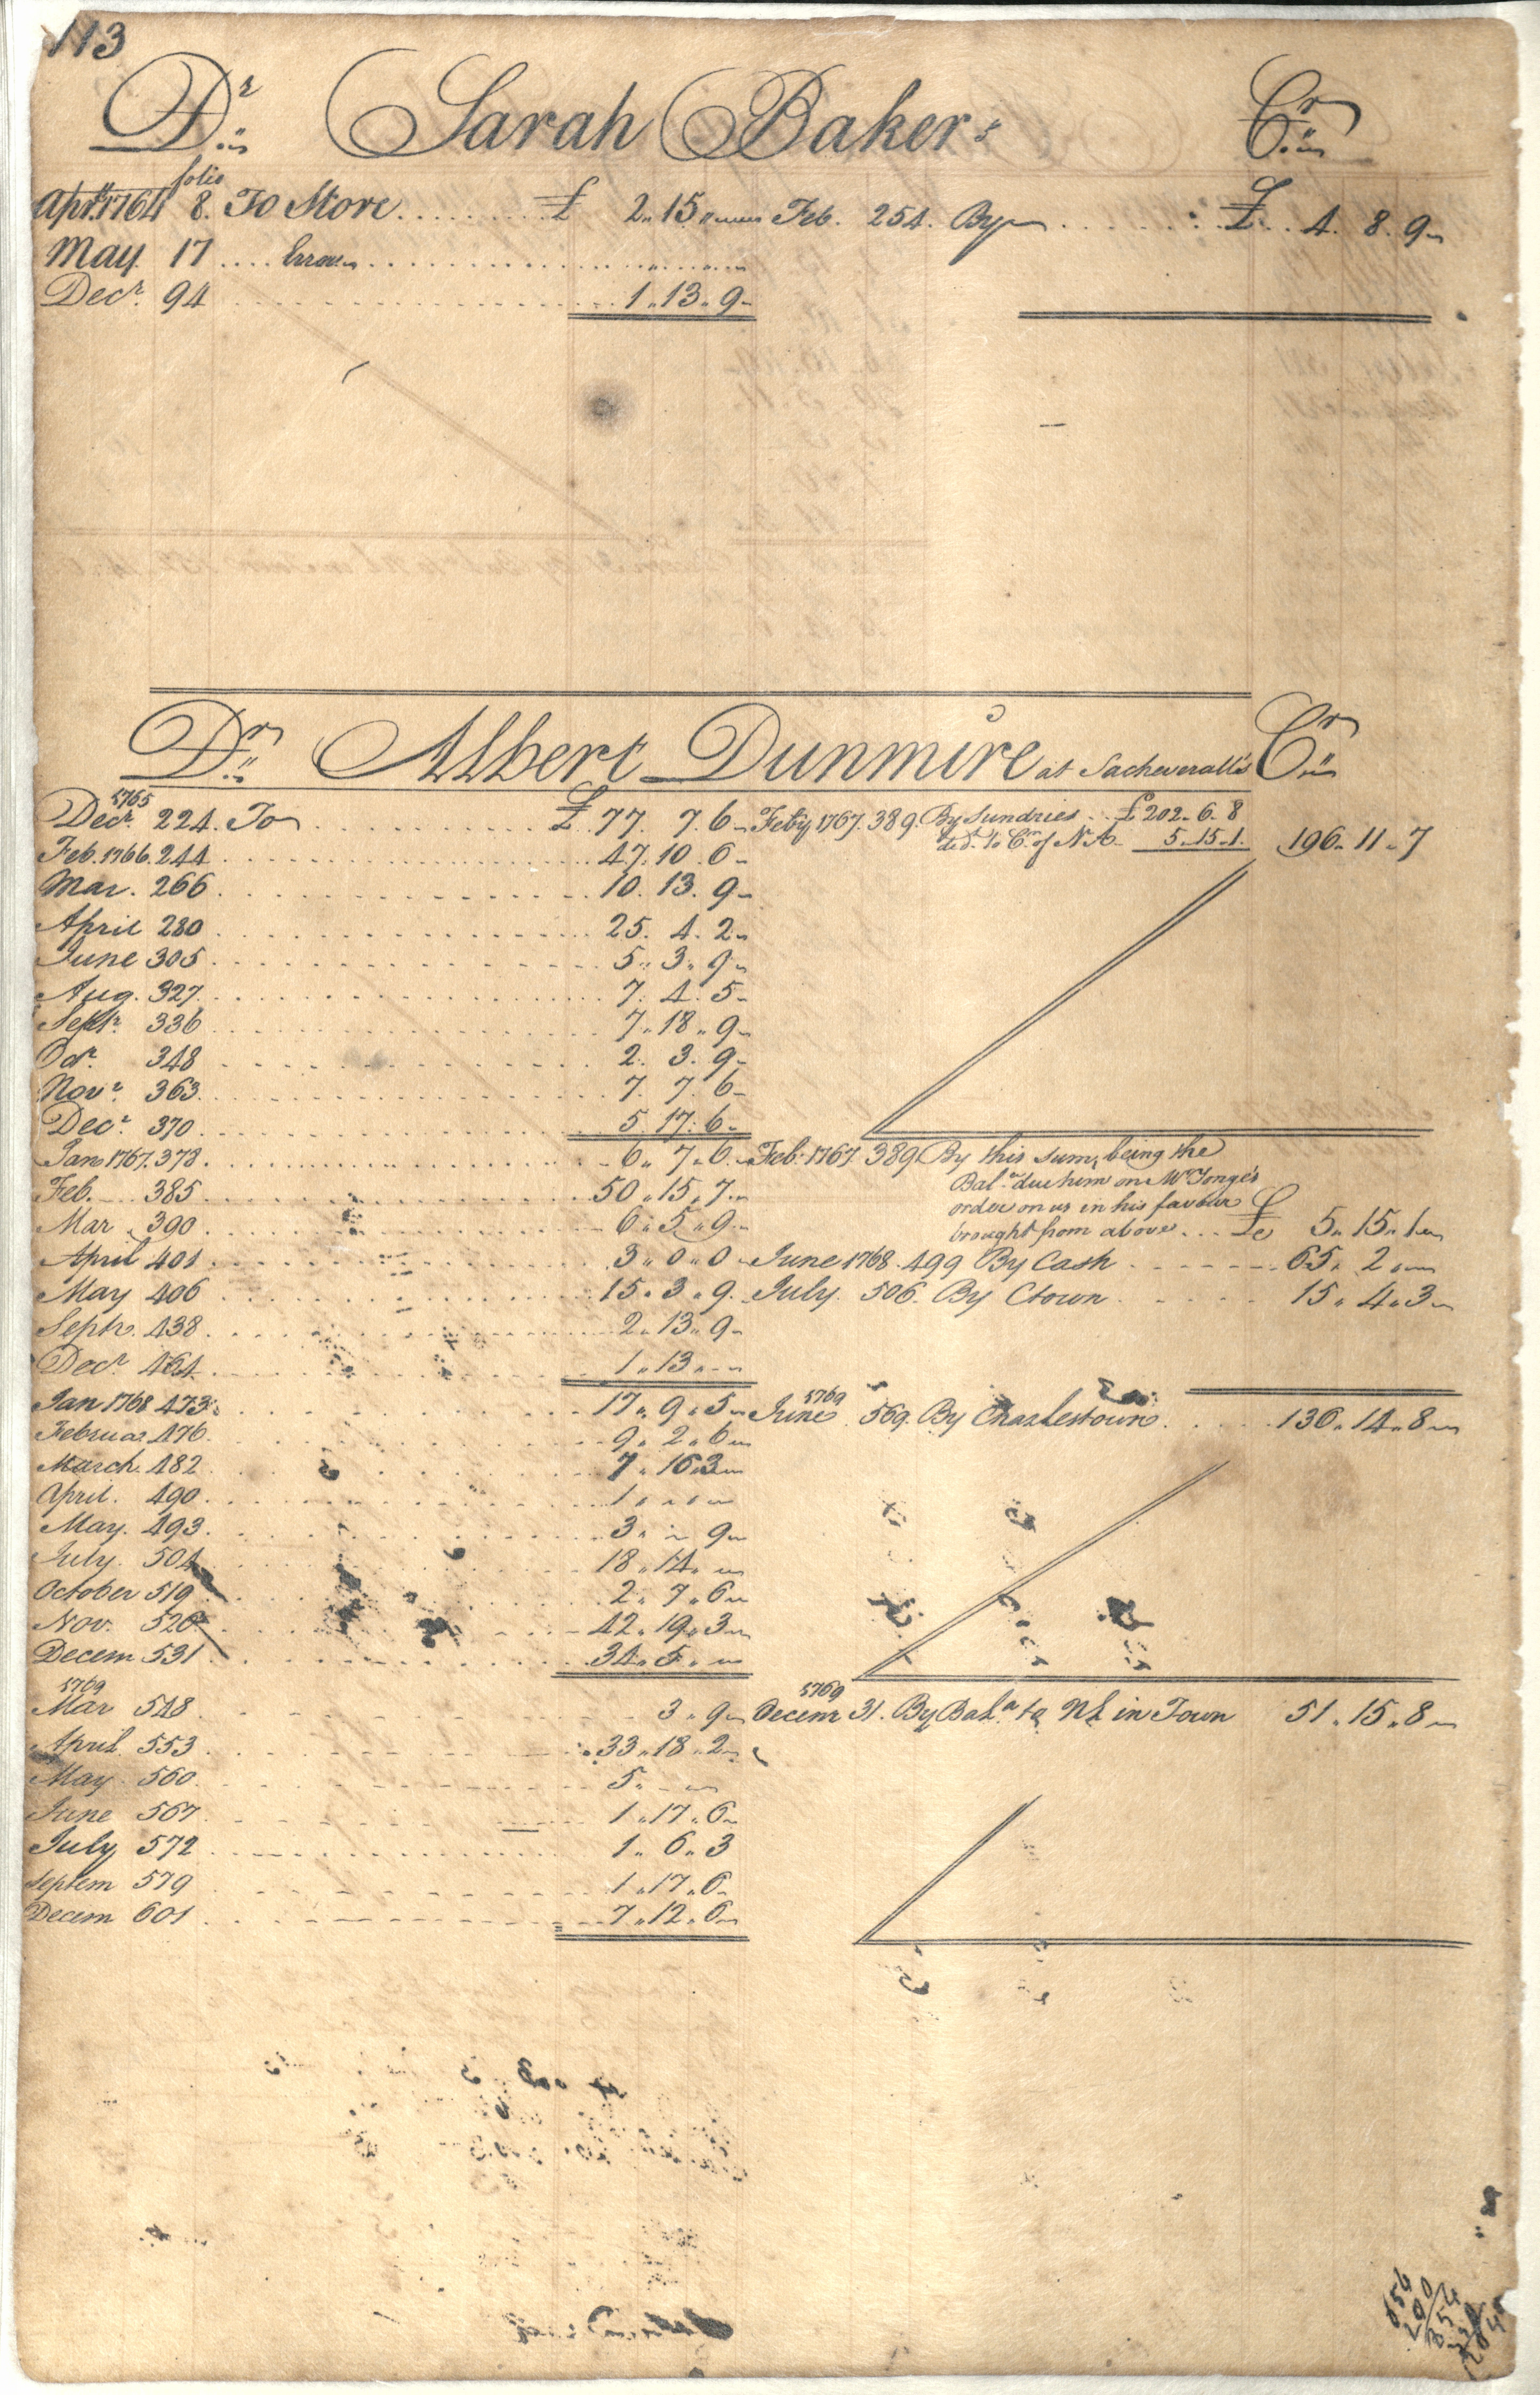 Plowden Weston's Business Ledger, page 113